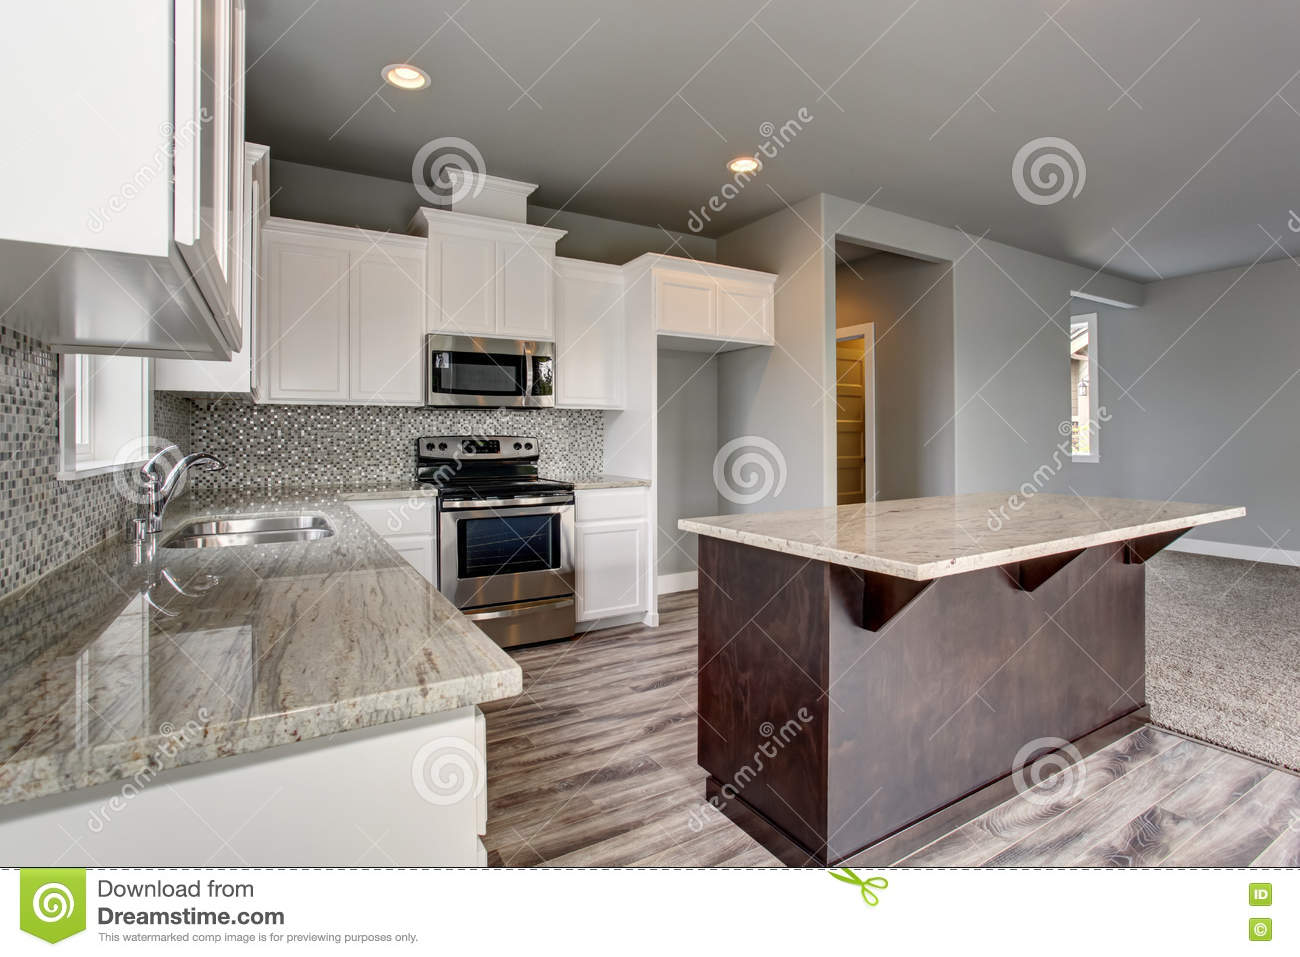 Lovely kitchen room interior with white cabinets kitchen for Cuisine blanche et grise